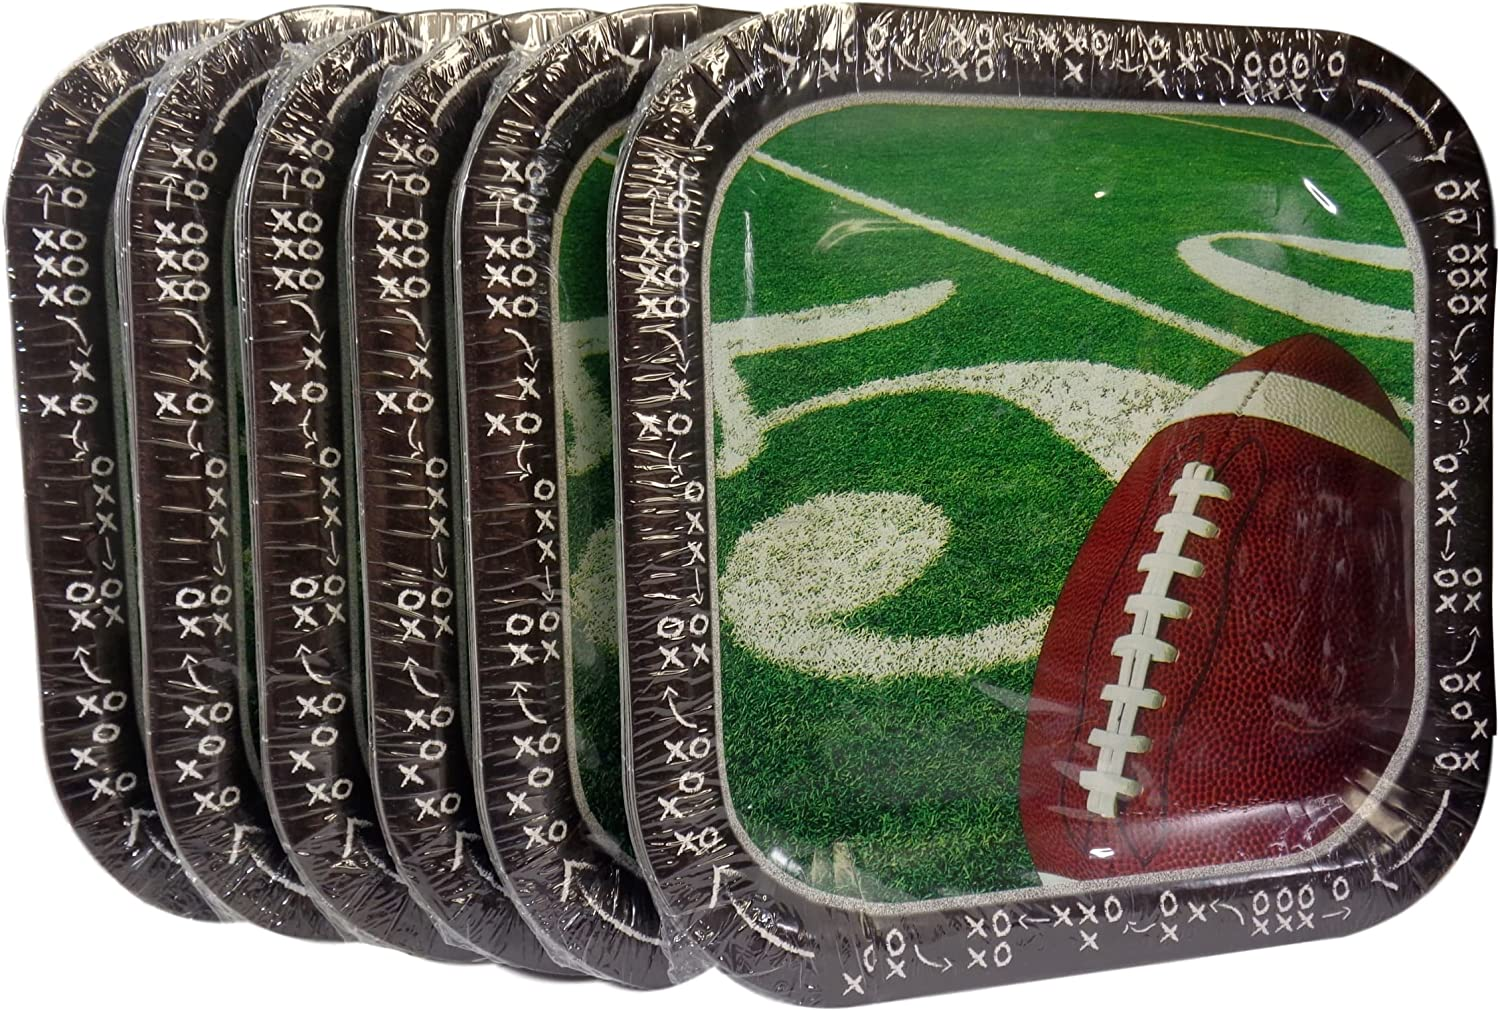 serving dishes tailgating plate super bowl plate football decor football square charger touchdown square platter whimsical pottery